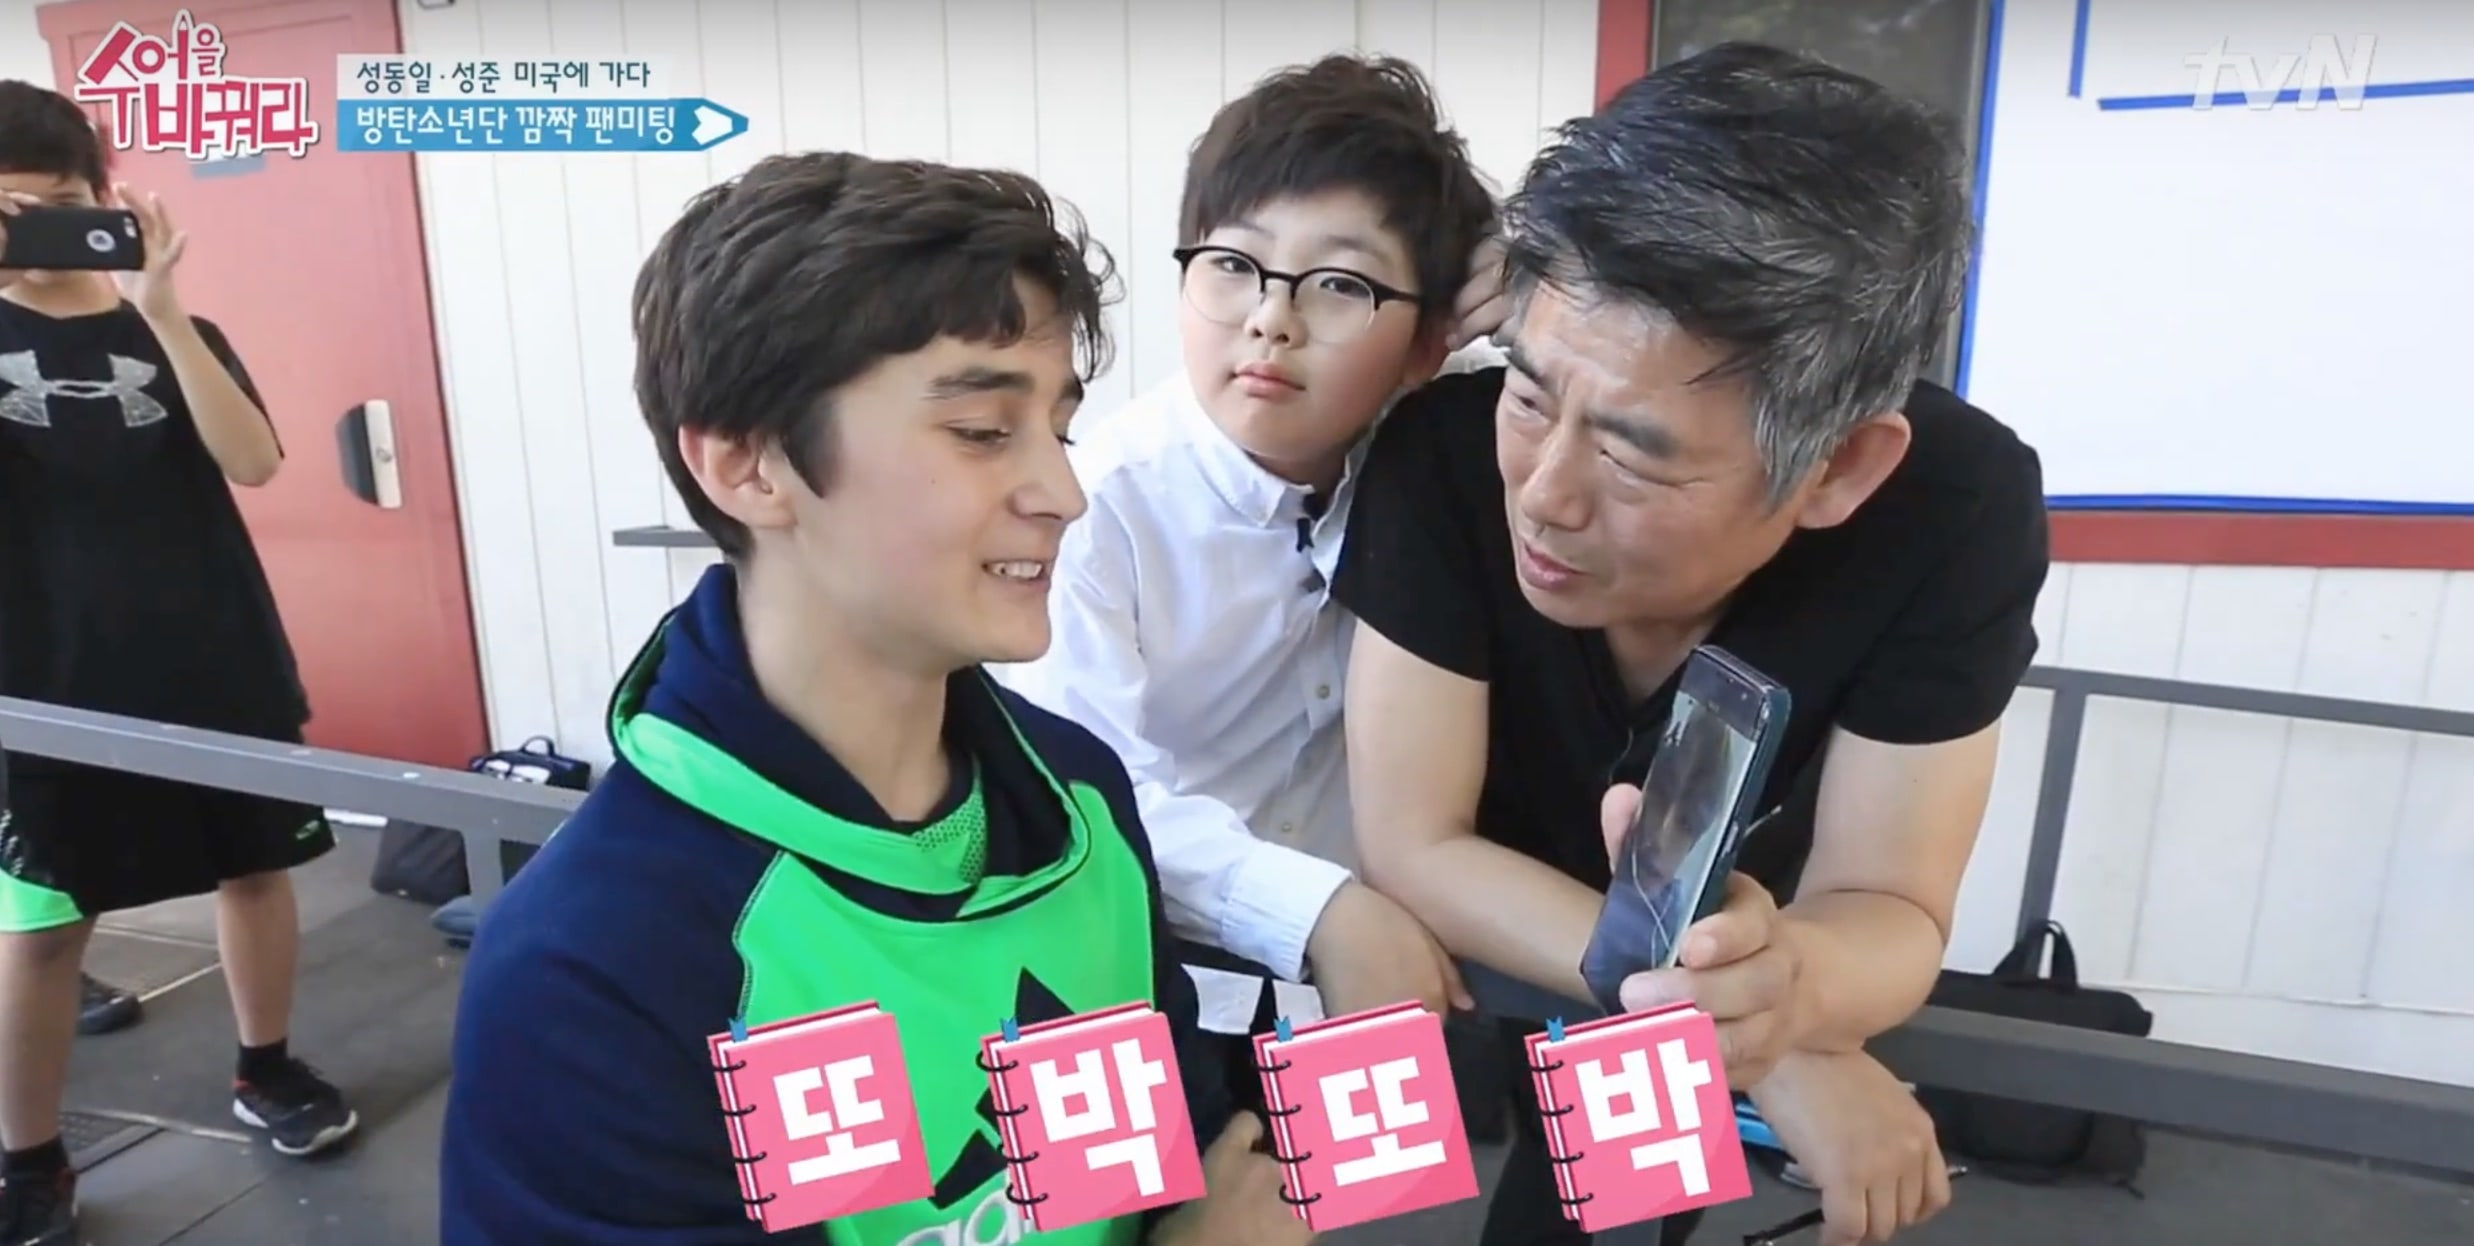 Sung Dong Il Video Calls BTS's V For A Fan And Mentions Connections With EXO's D.O.